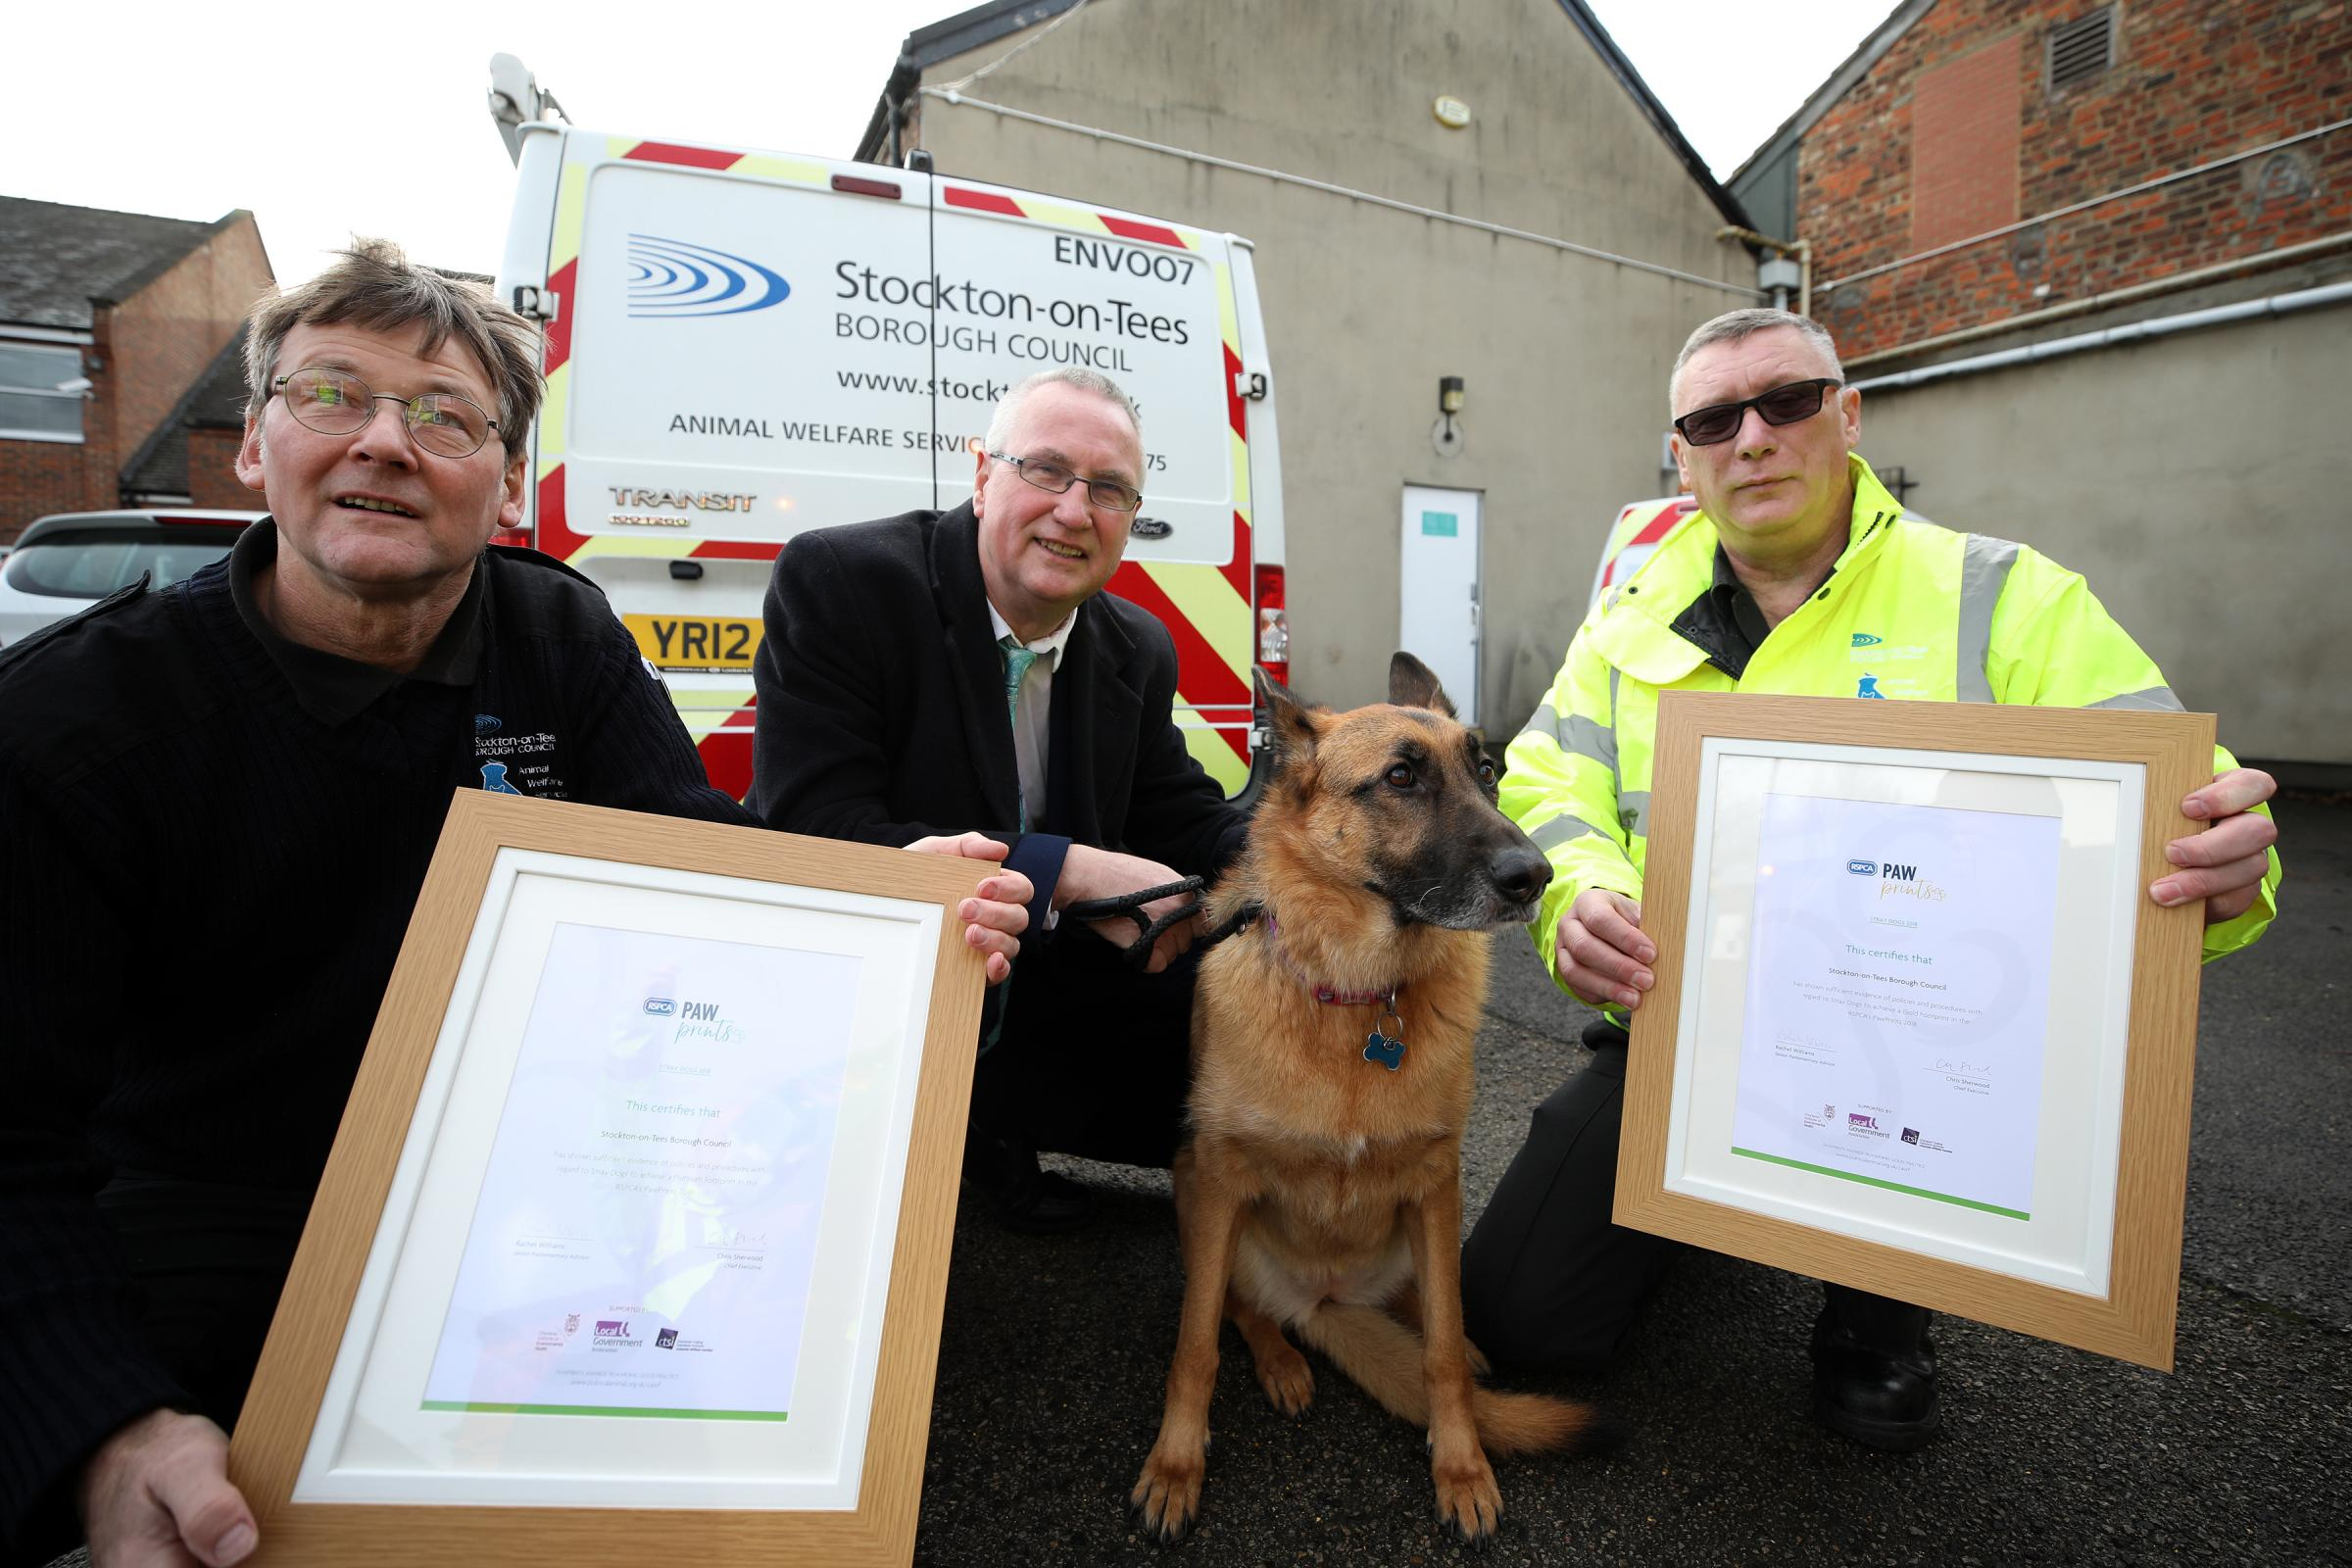 Rspca Inspector Special Award With The Rspca Awards Are Robin Hunter Animal Enforcement Officer Councillor The Advertiser Top Rspca Award For Stockton Councils Dog Team The Northern Echo